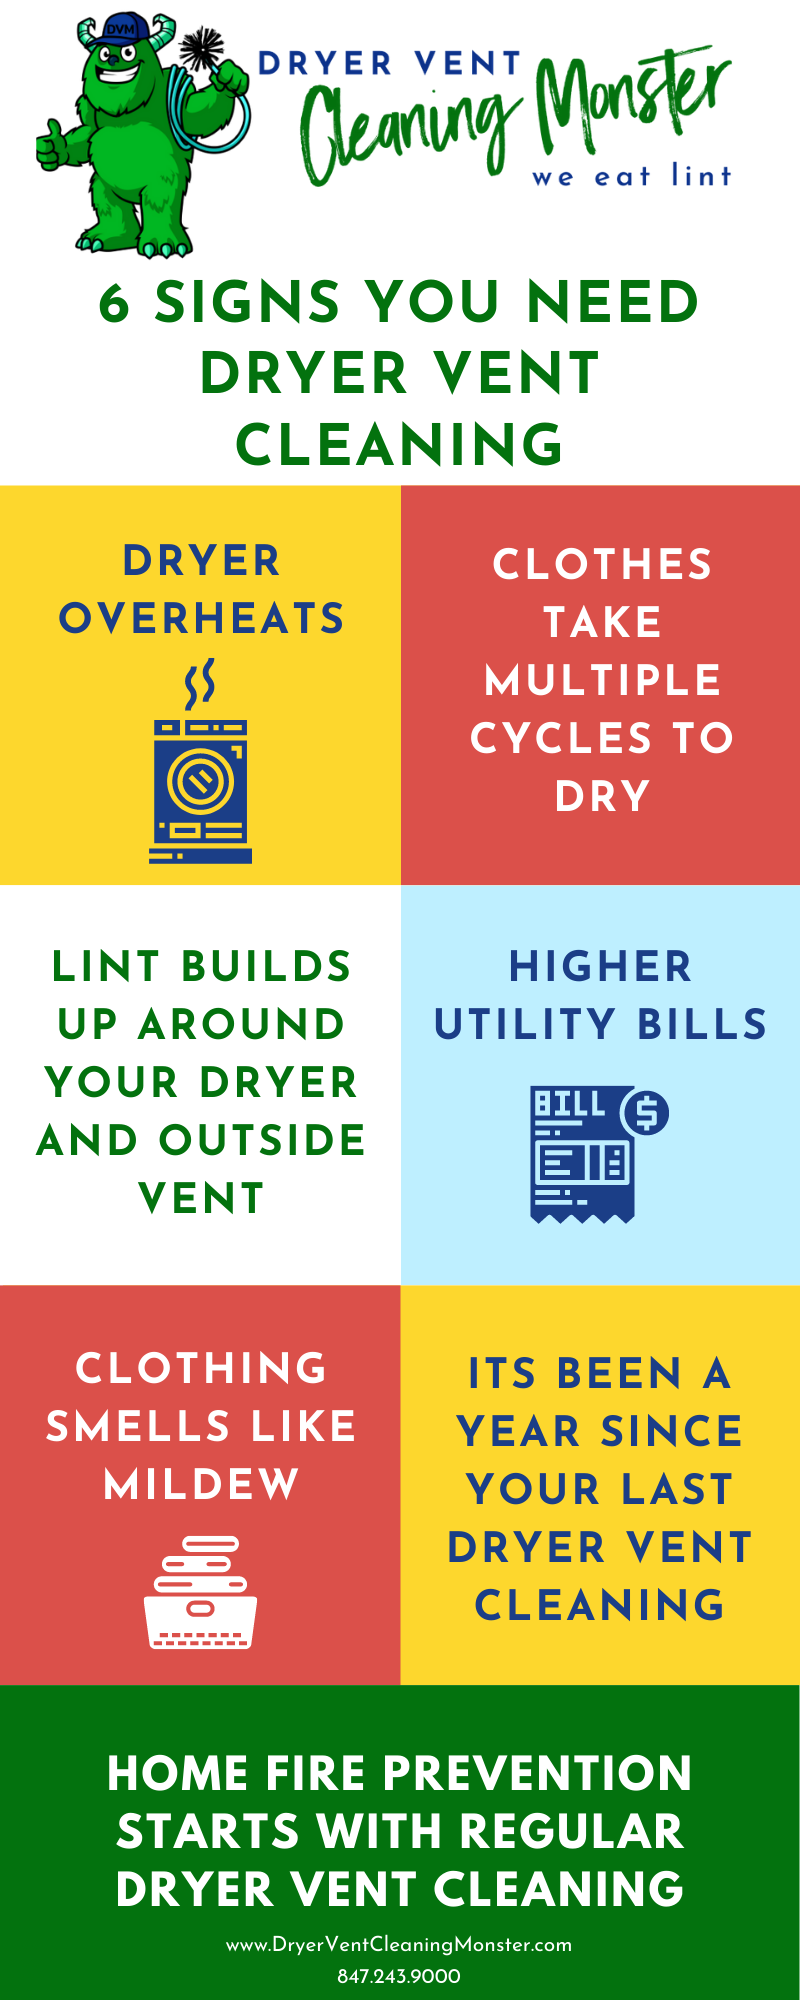 Dryer vent cleaning monster infographic on the 6 major signs you need dryer vent cleaning